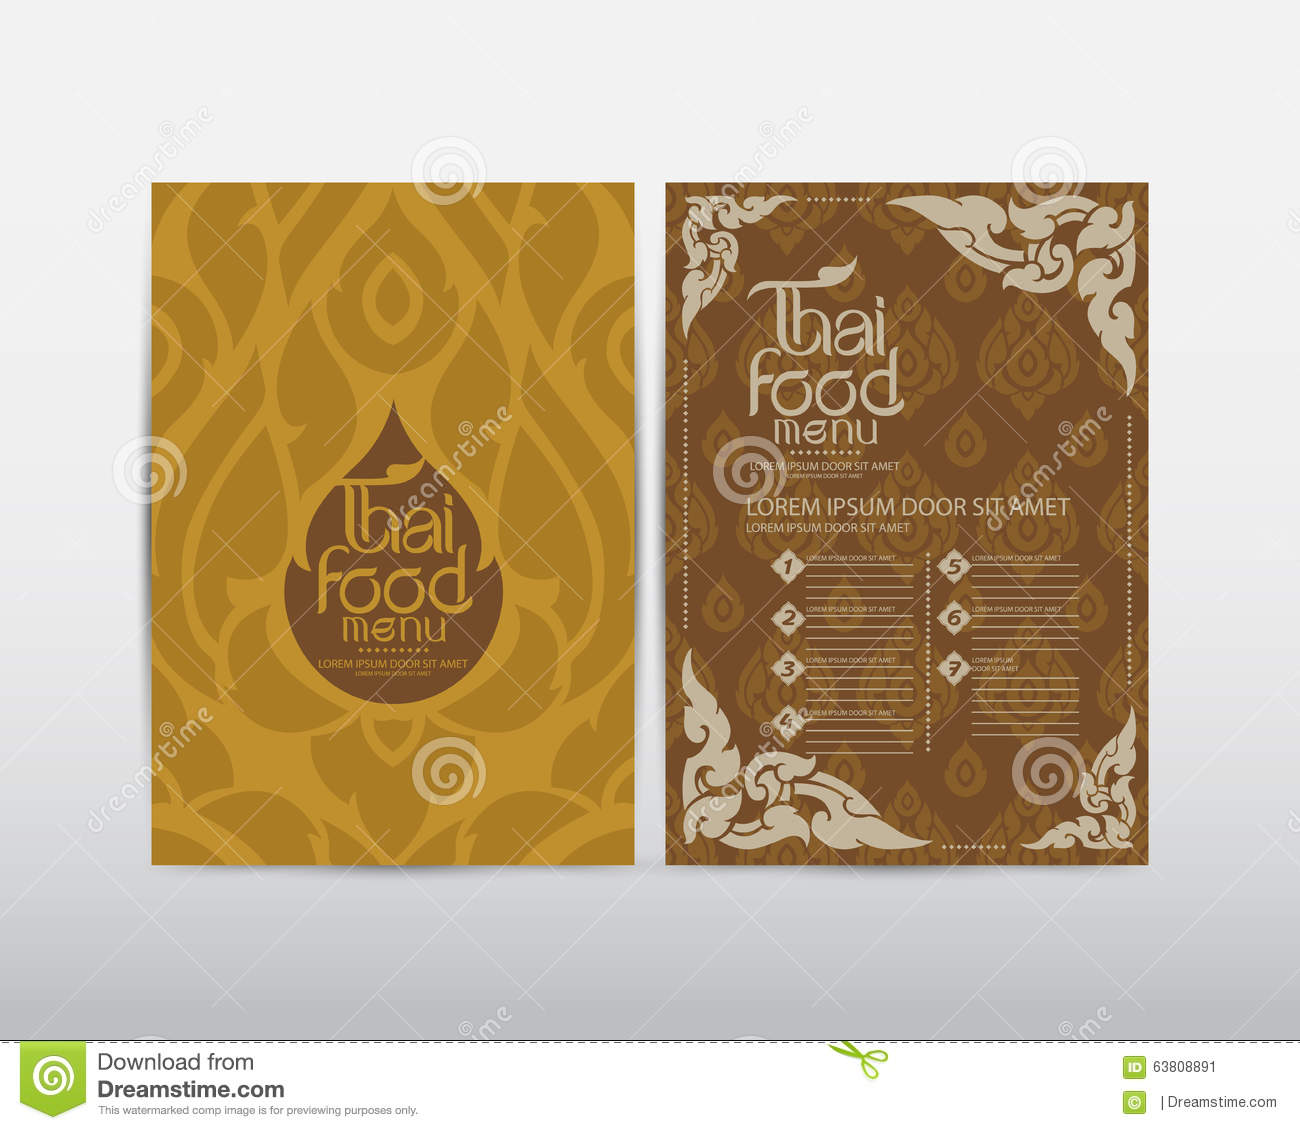 Thai art food menu design vector stock illustration for Artistic cuisine menu